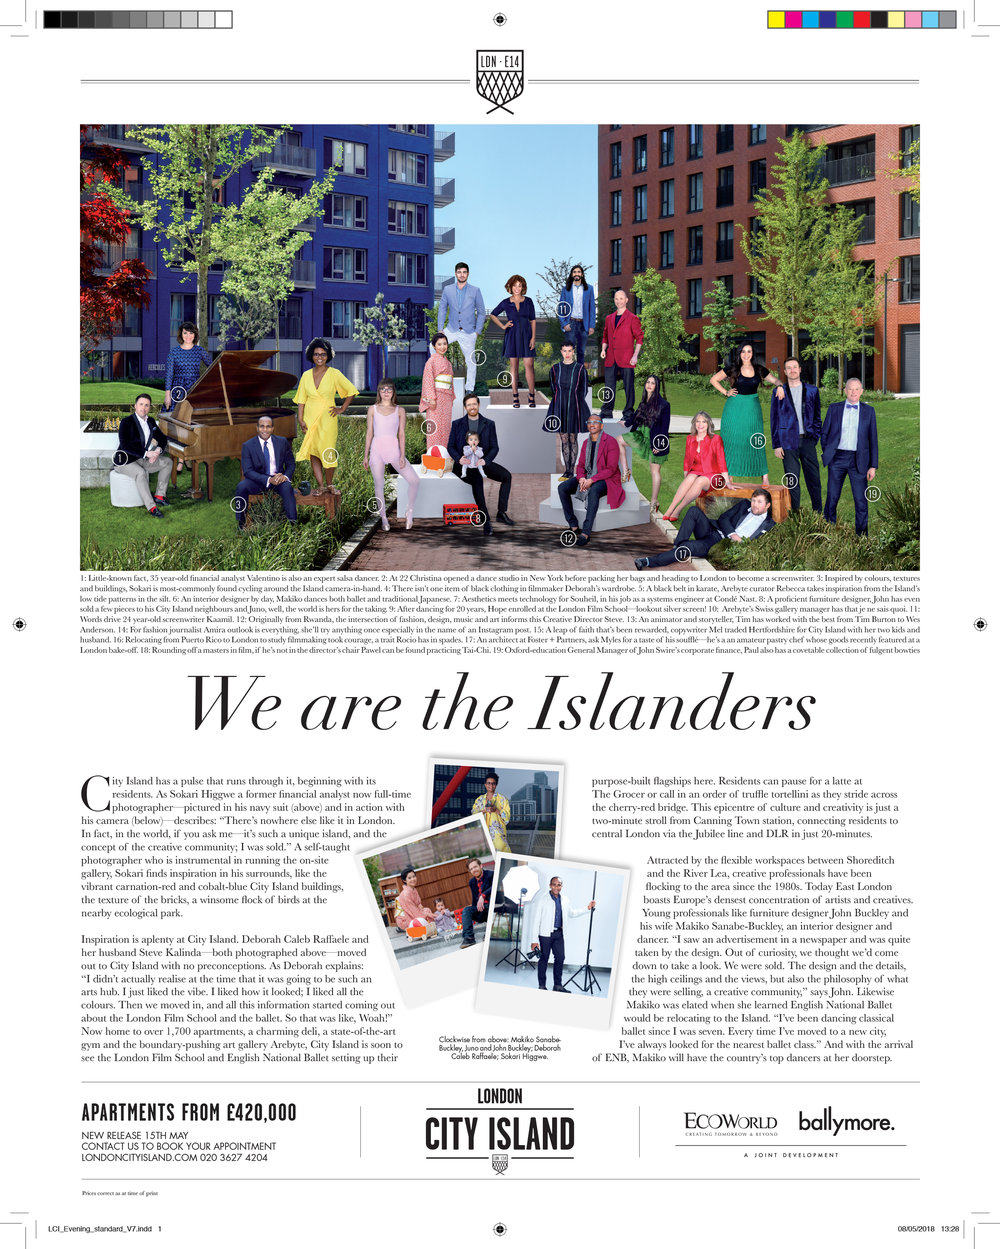 LondonCityIsland_EveningStandard_FullPage_May9.jpg